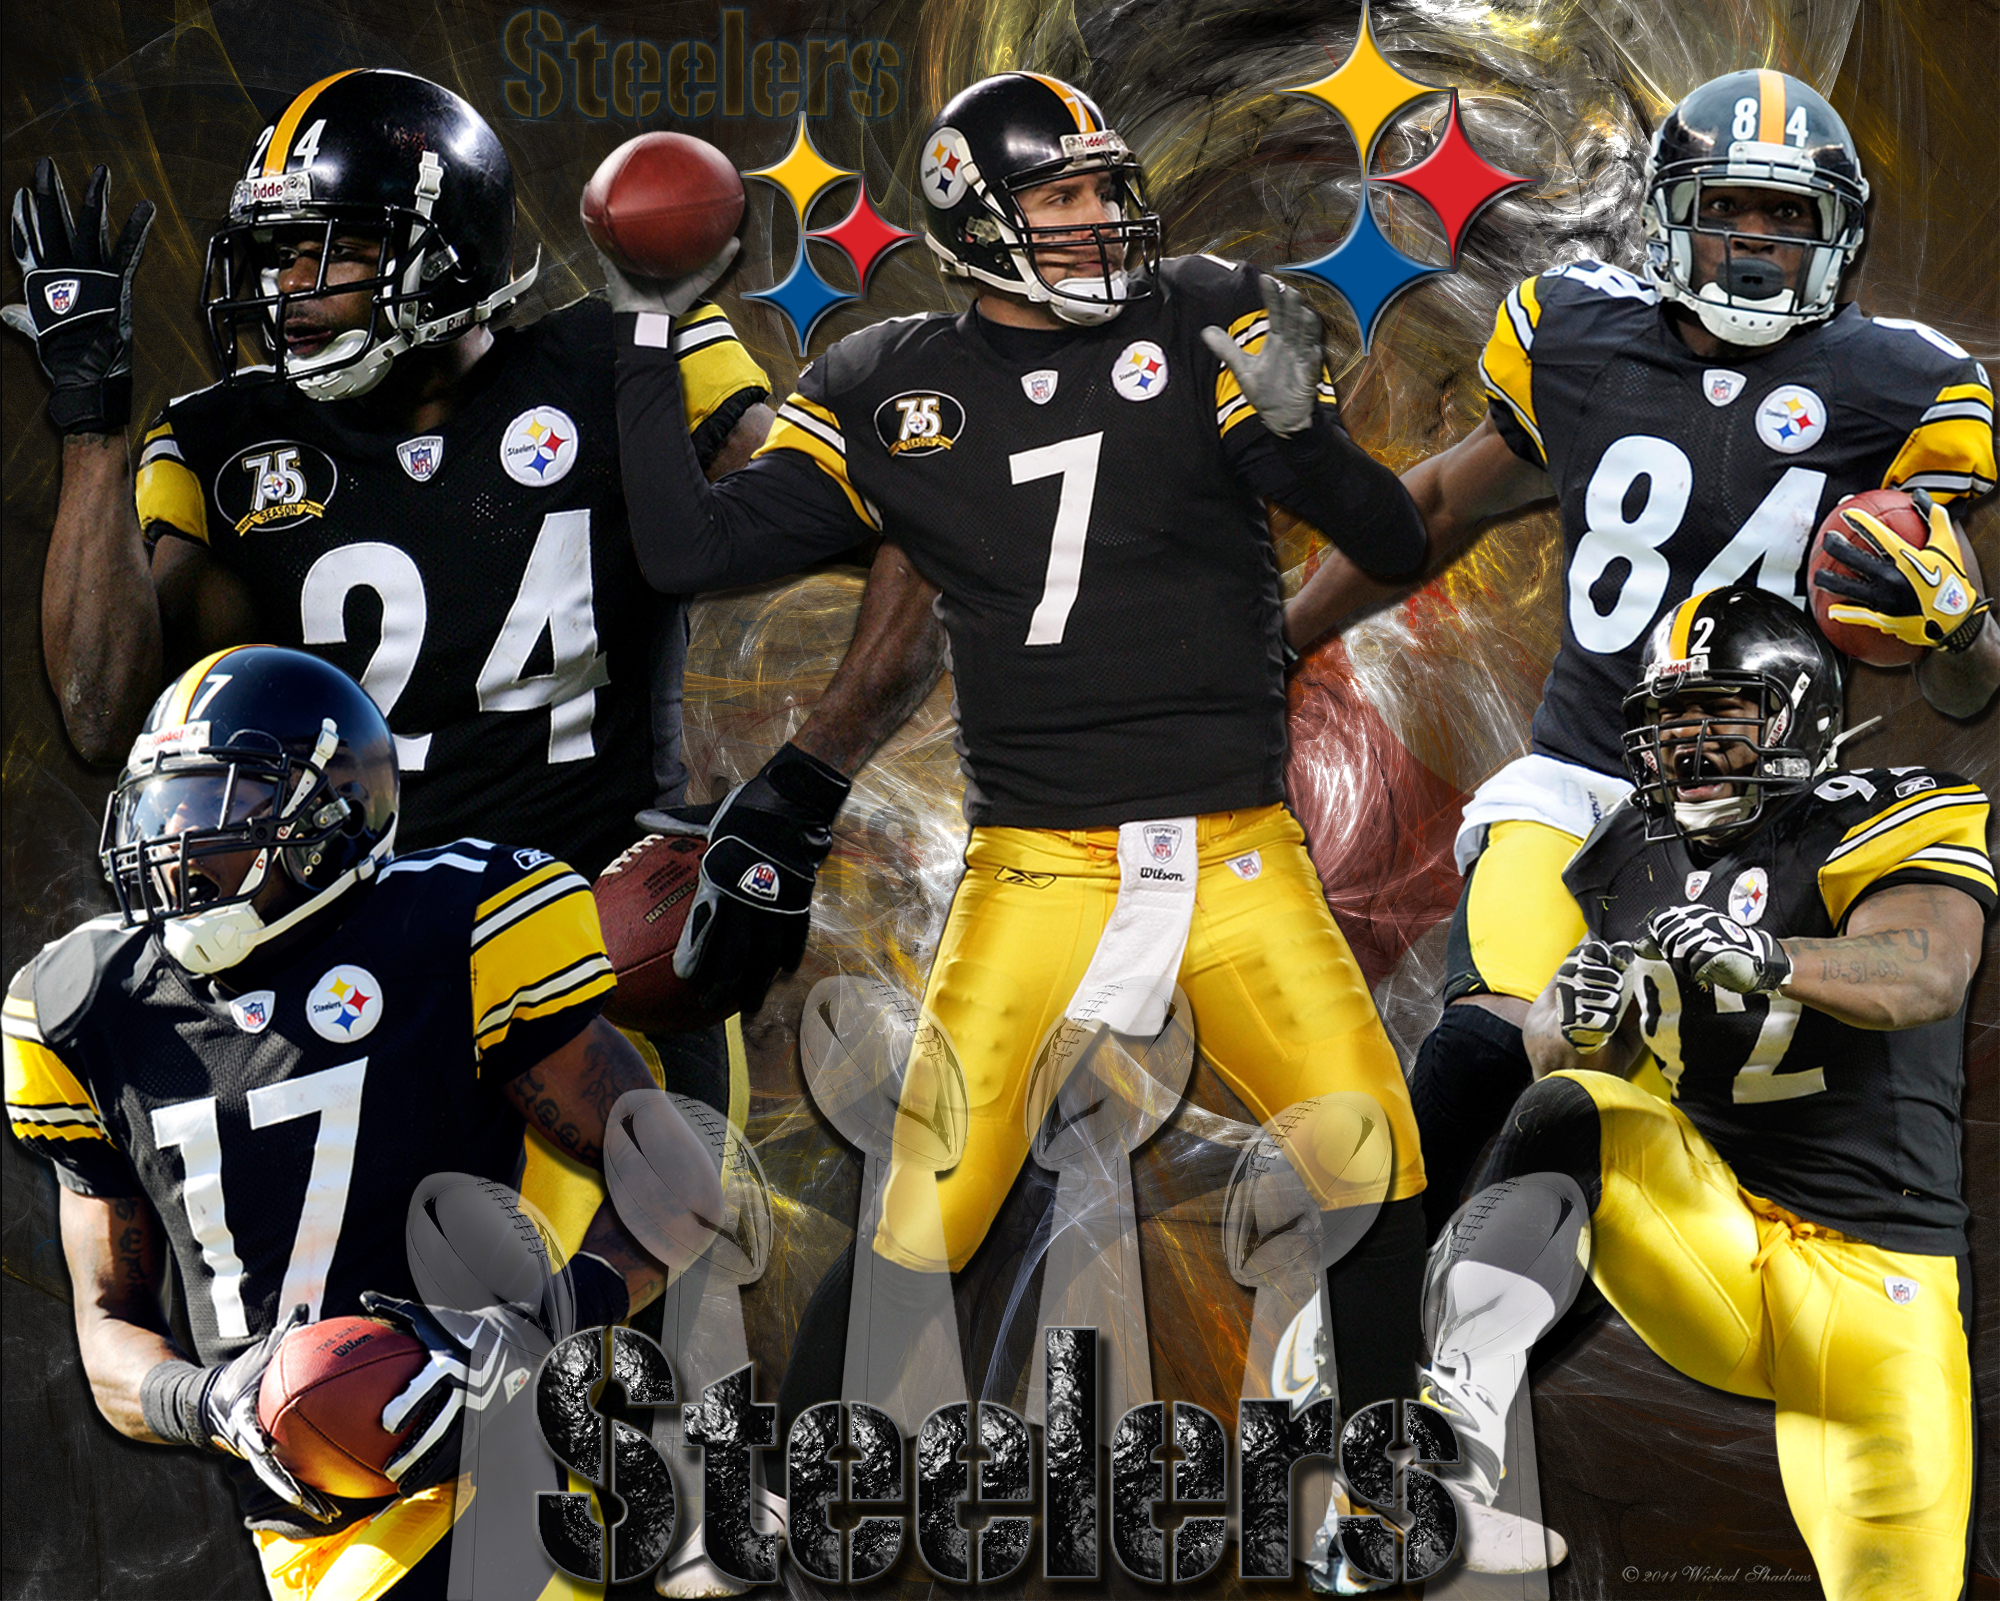 45 Nfl Football Players Wallpaper On Wallpapersafari: [48+] 3D Pittsburgh Steelers Wallpaper On WallpaperSafari